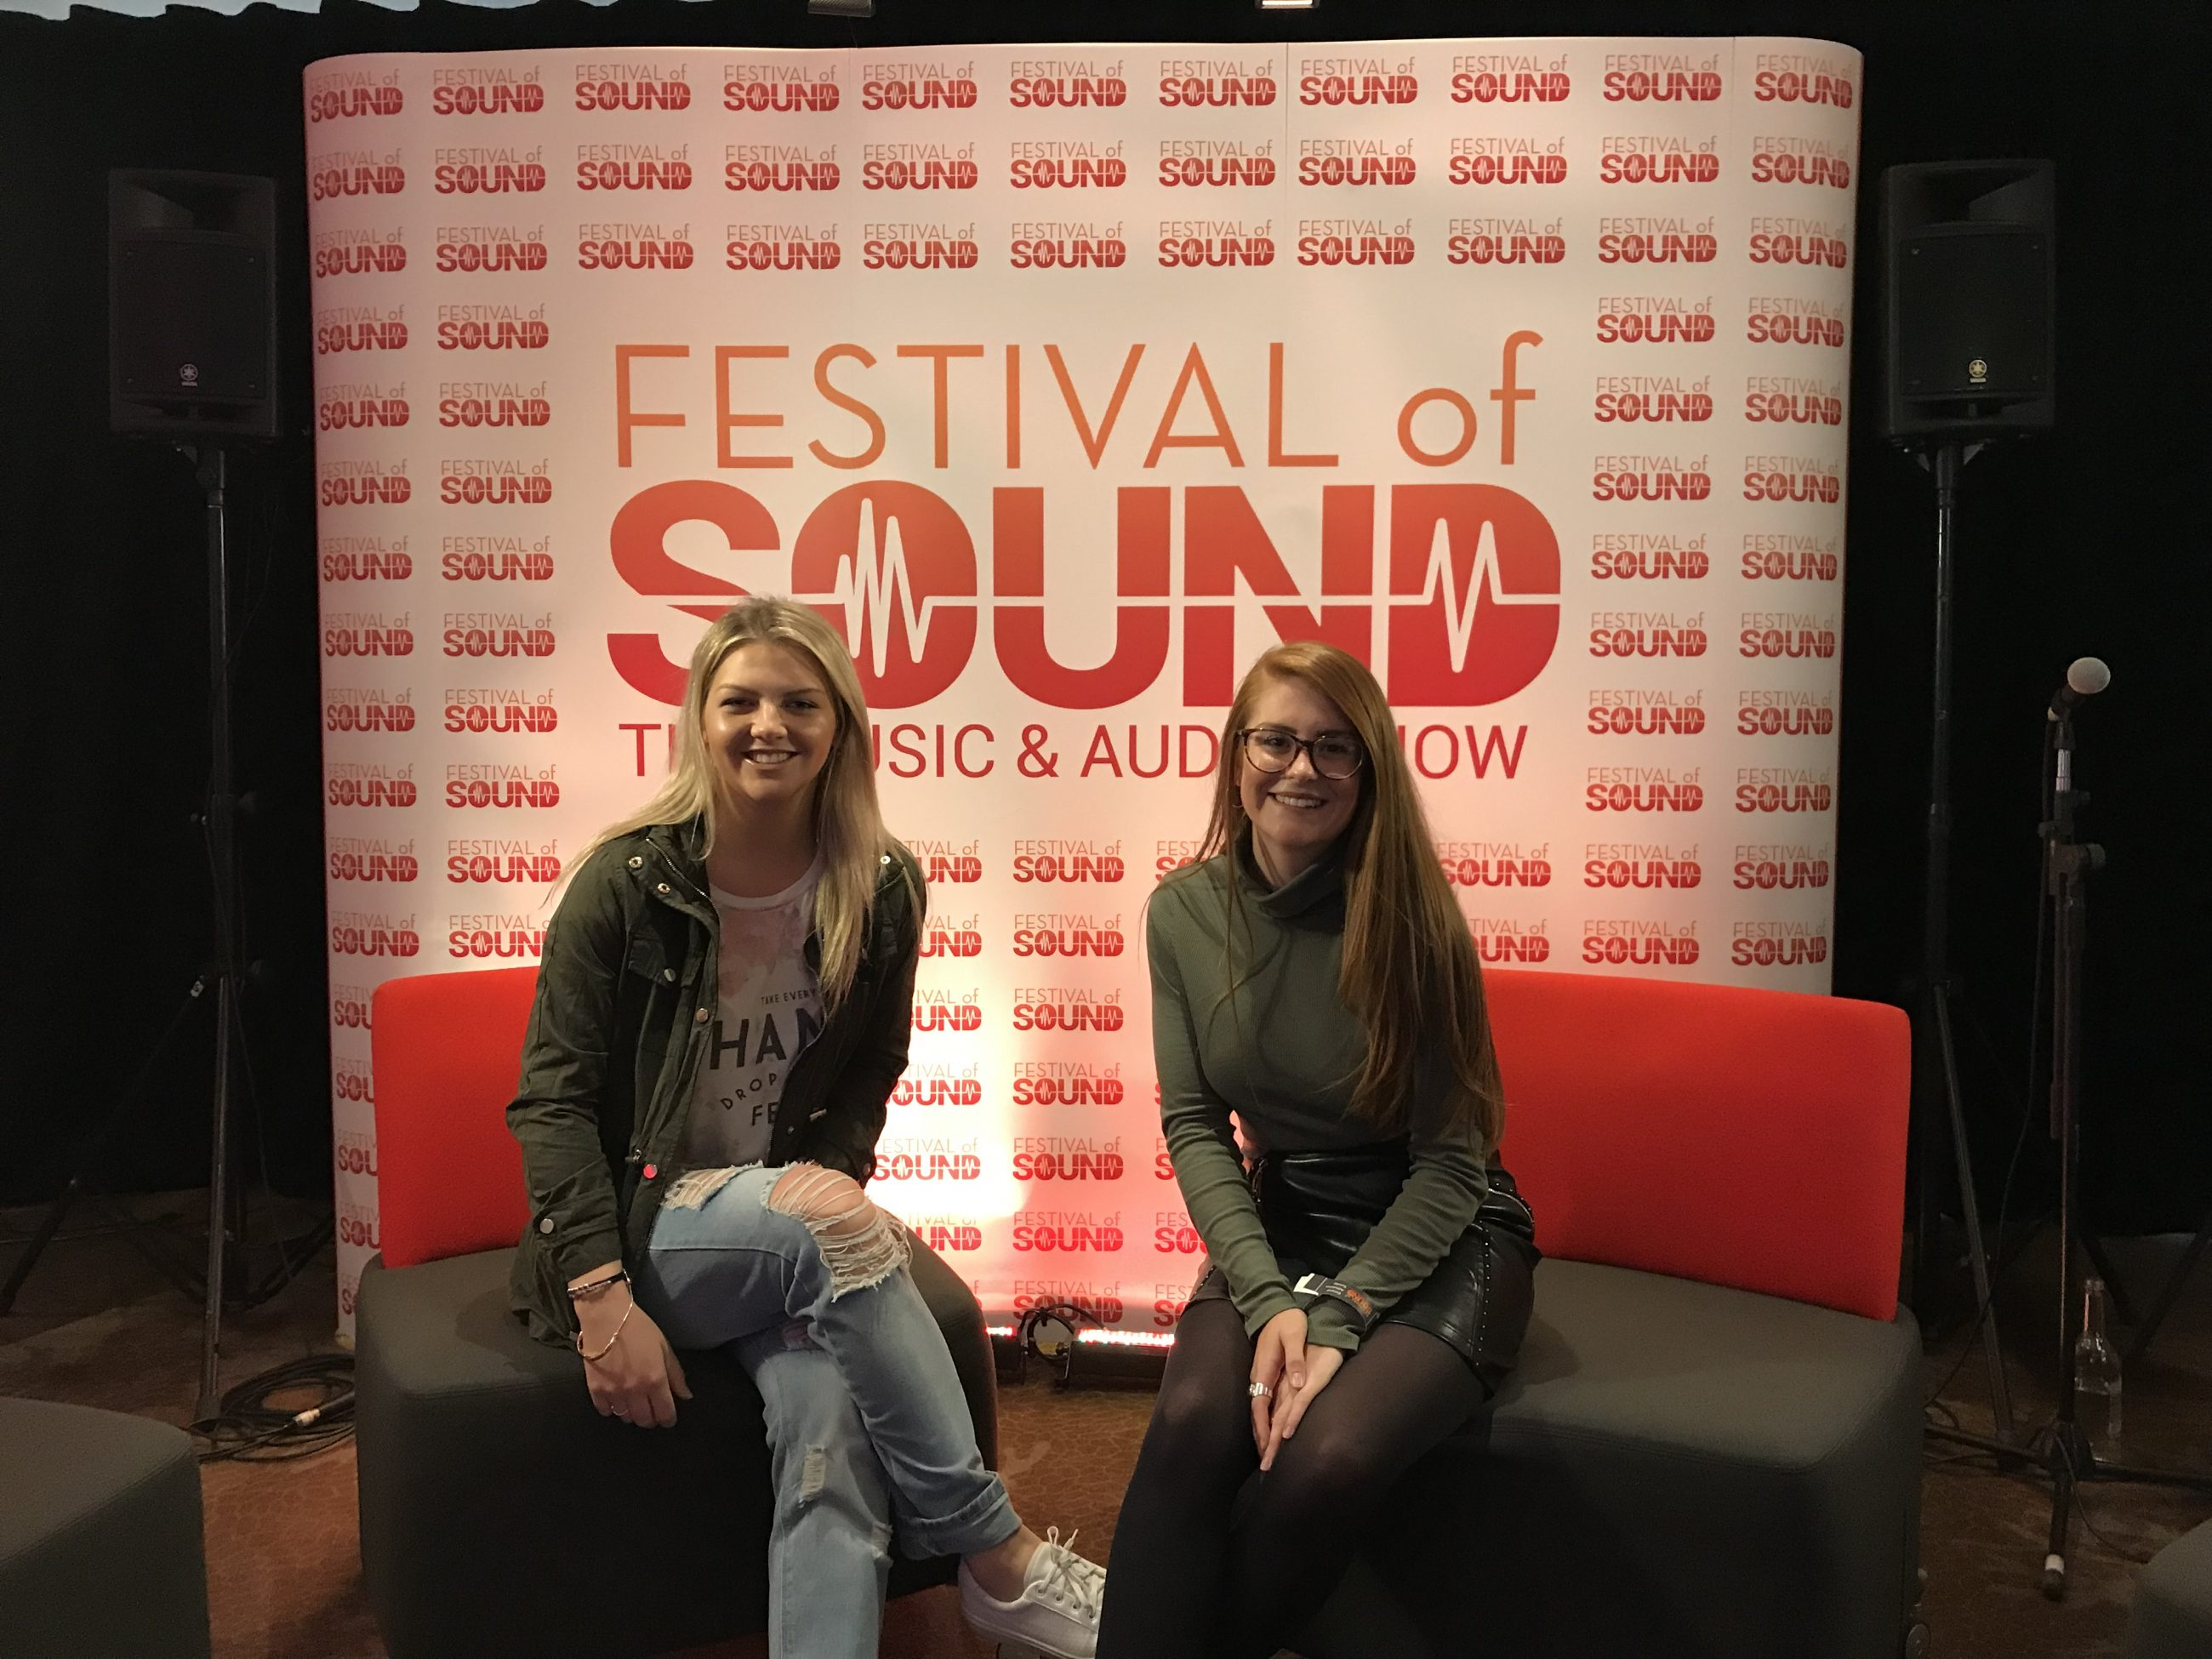 Hannah and Chloe at Festival of Sound